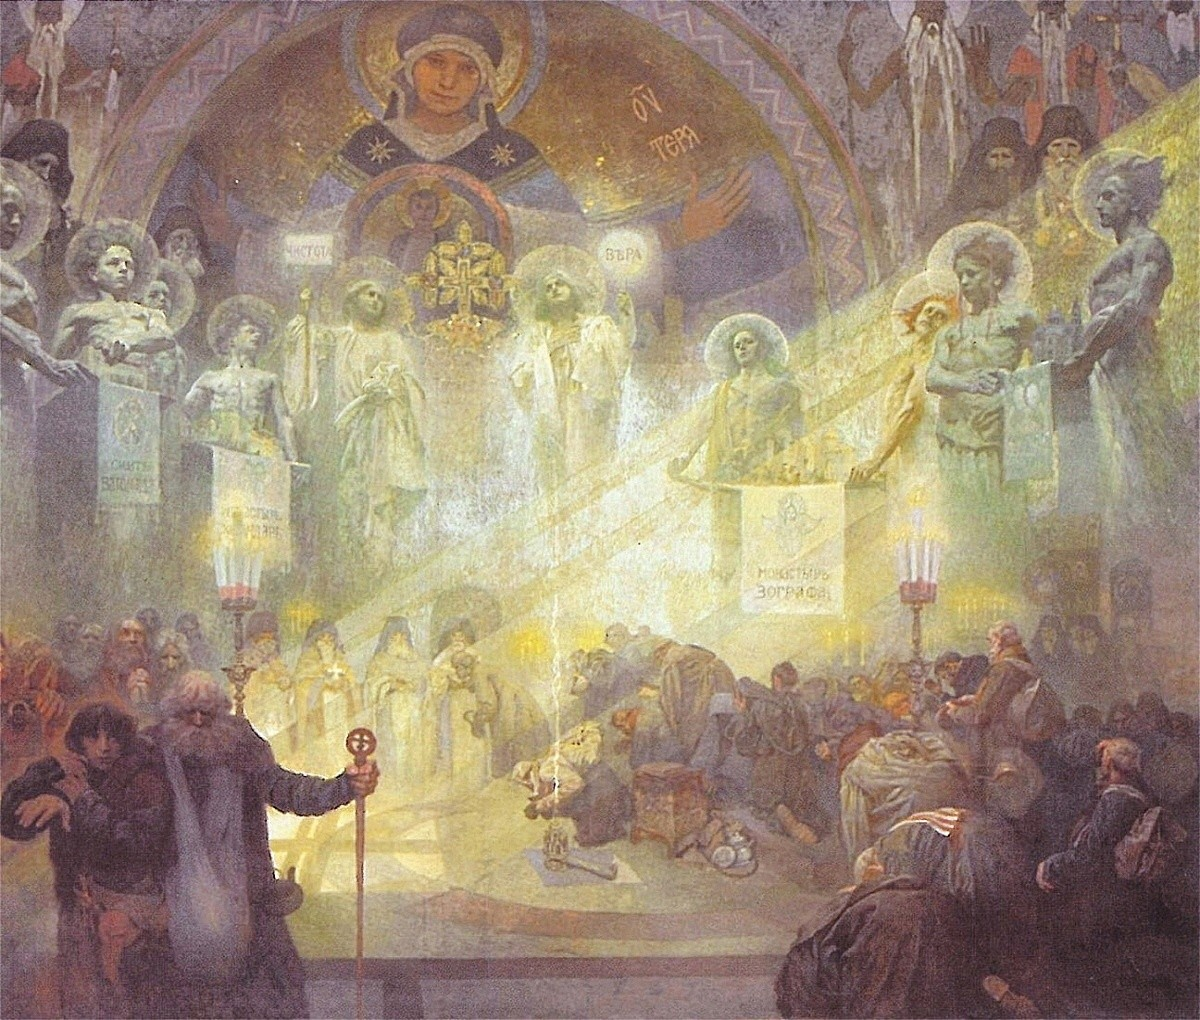 17-Alfons Maria Mucha. Mount Athos, The Holy Mountain. The Orthodox Vatican (from the Slavonic Epic, nr 17). 1926